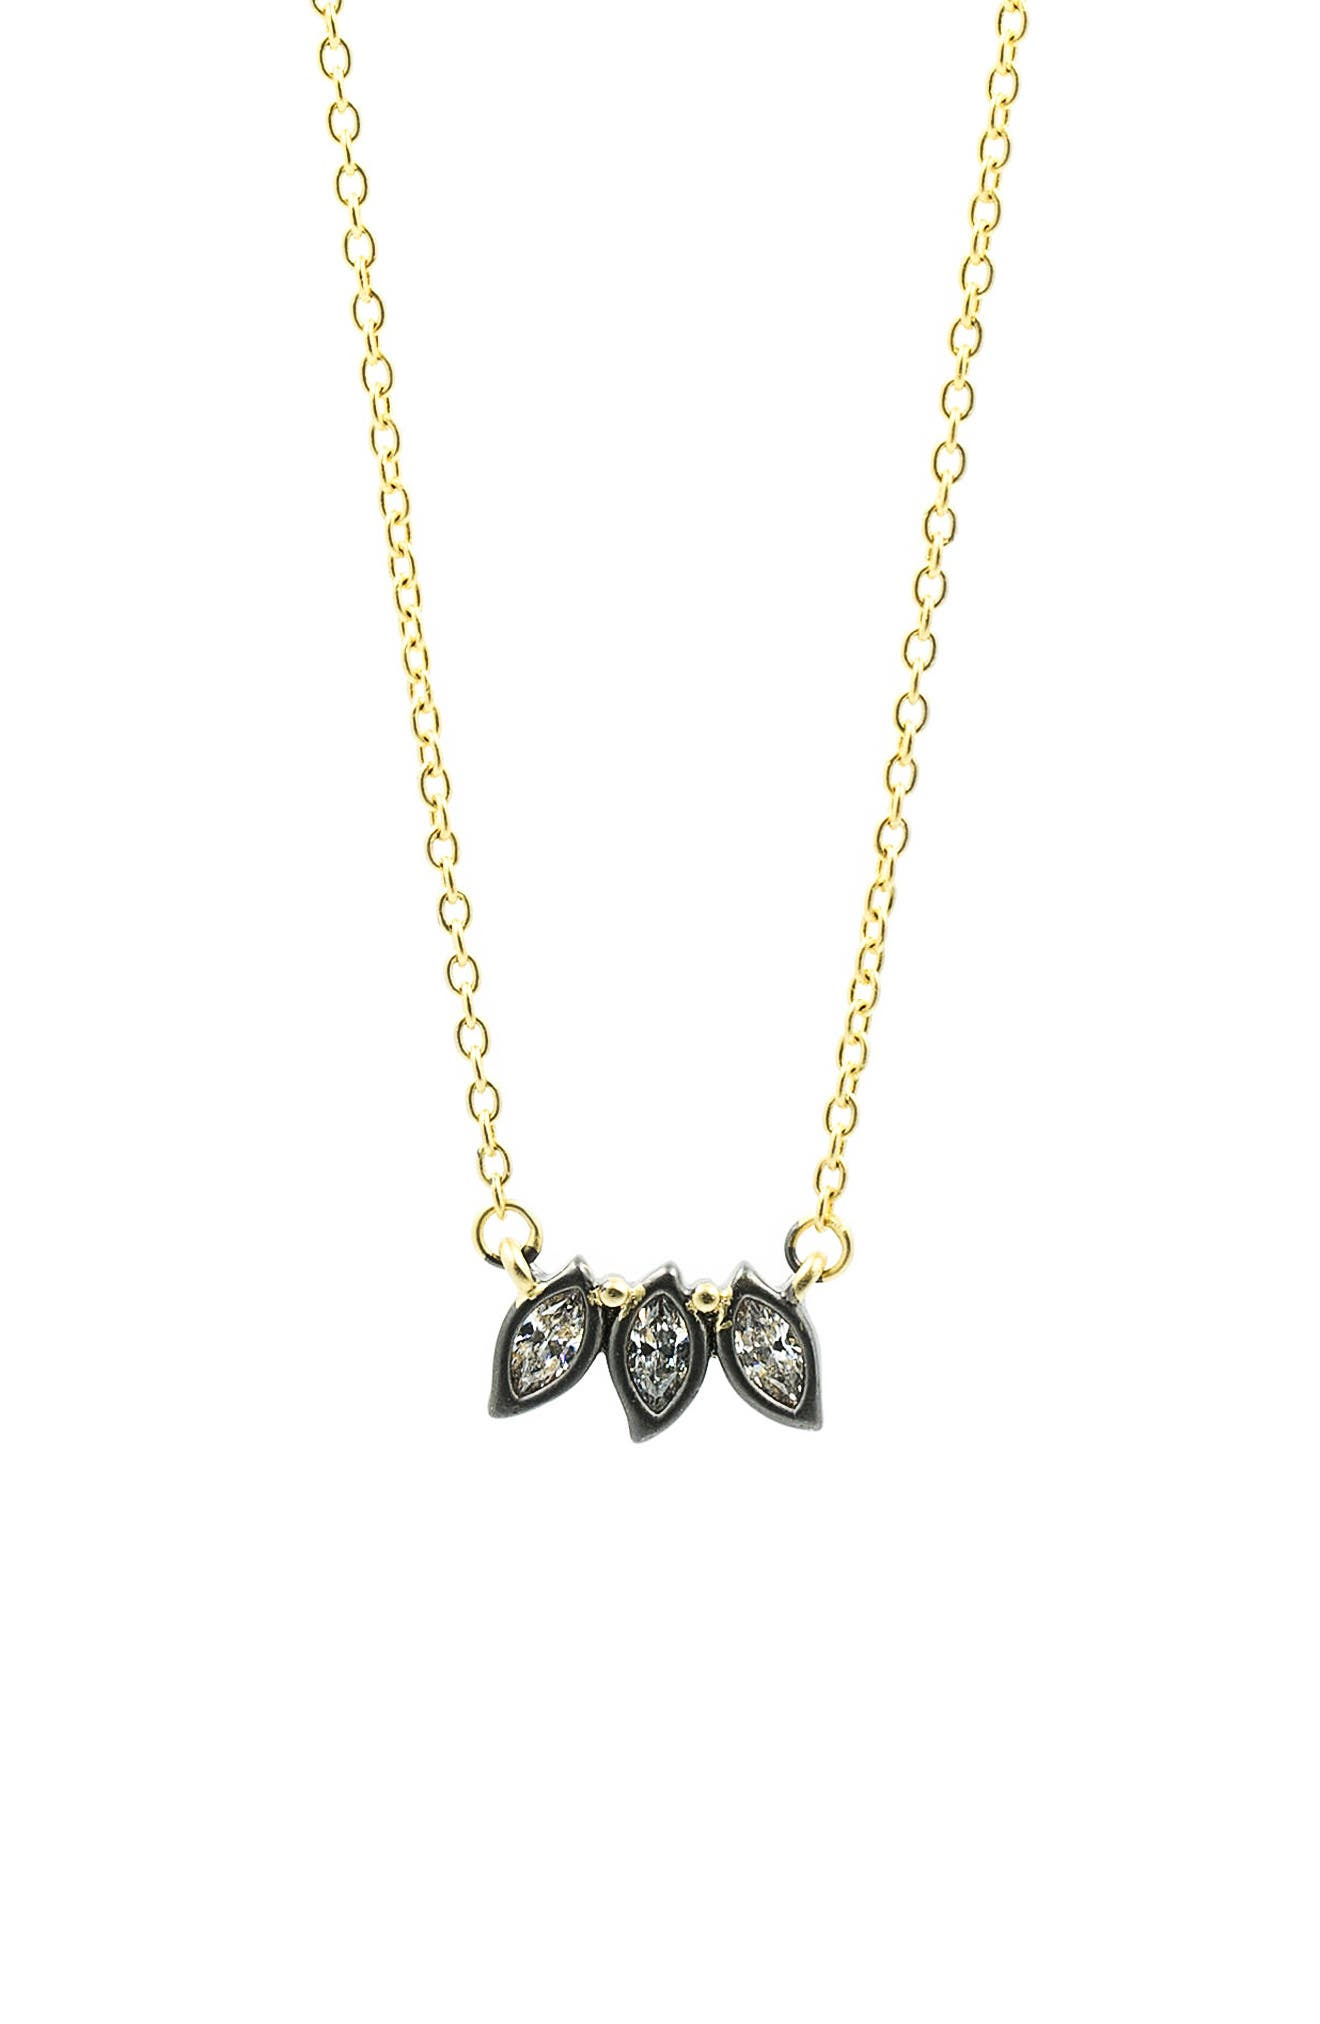 Fleur Bloom Triple Leaf Pendant Necklace,                         Main,                         color, Gold/ Black Rhodium